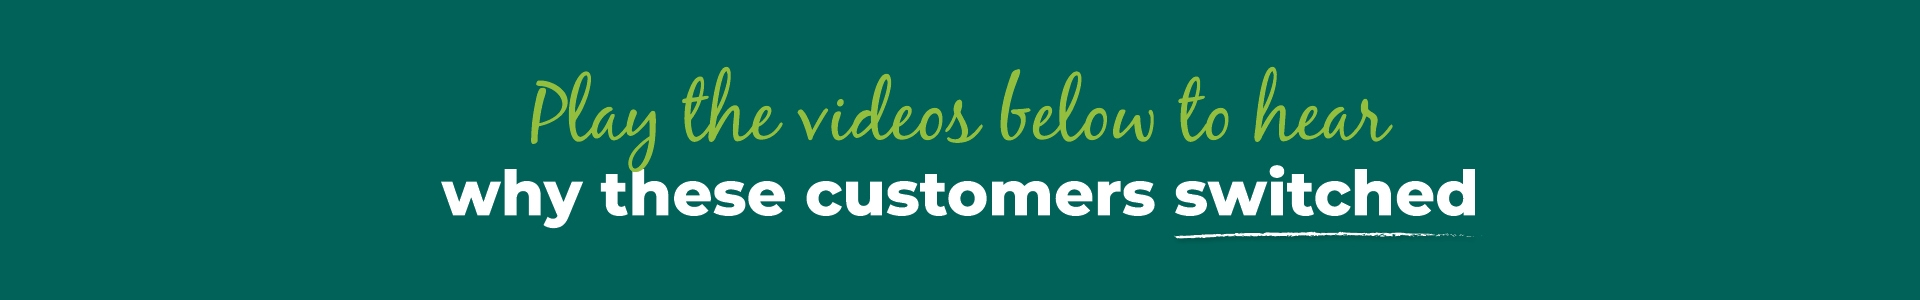 Click the videos below to hear why these customers switched Banner